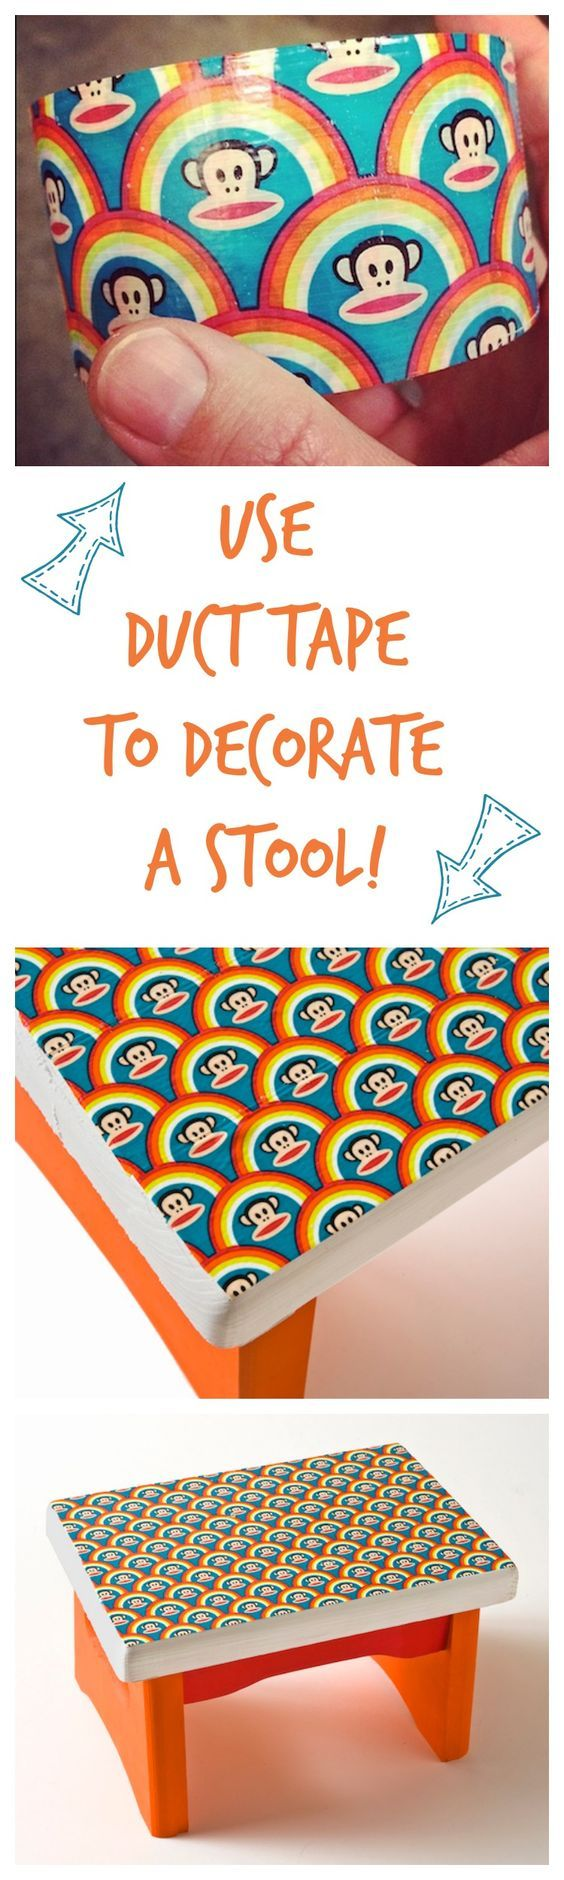 Use Paul Frank duct tape to decorate a stool